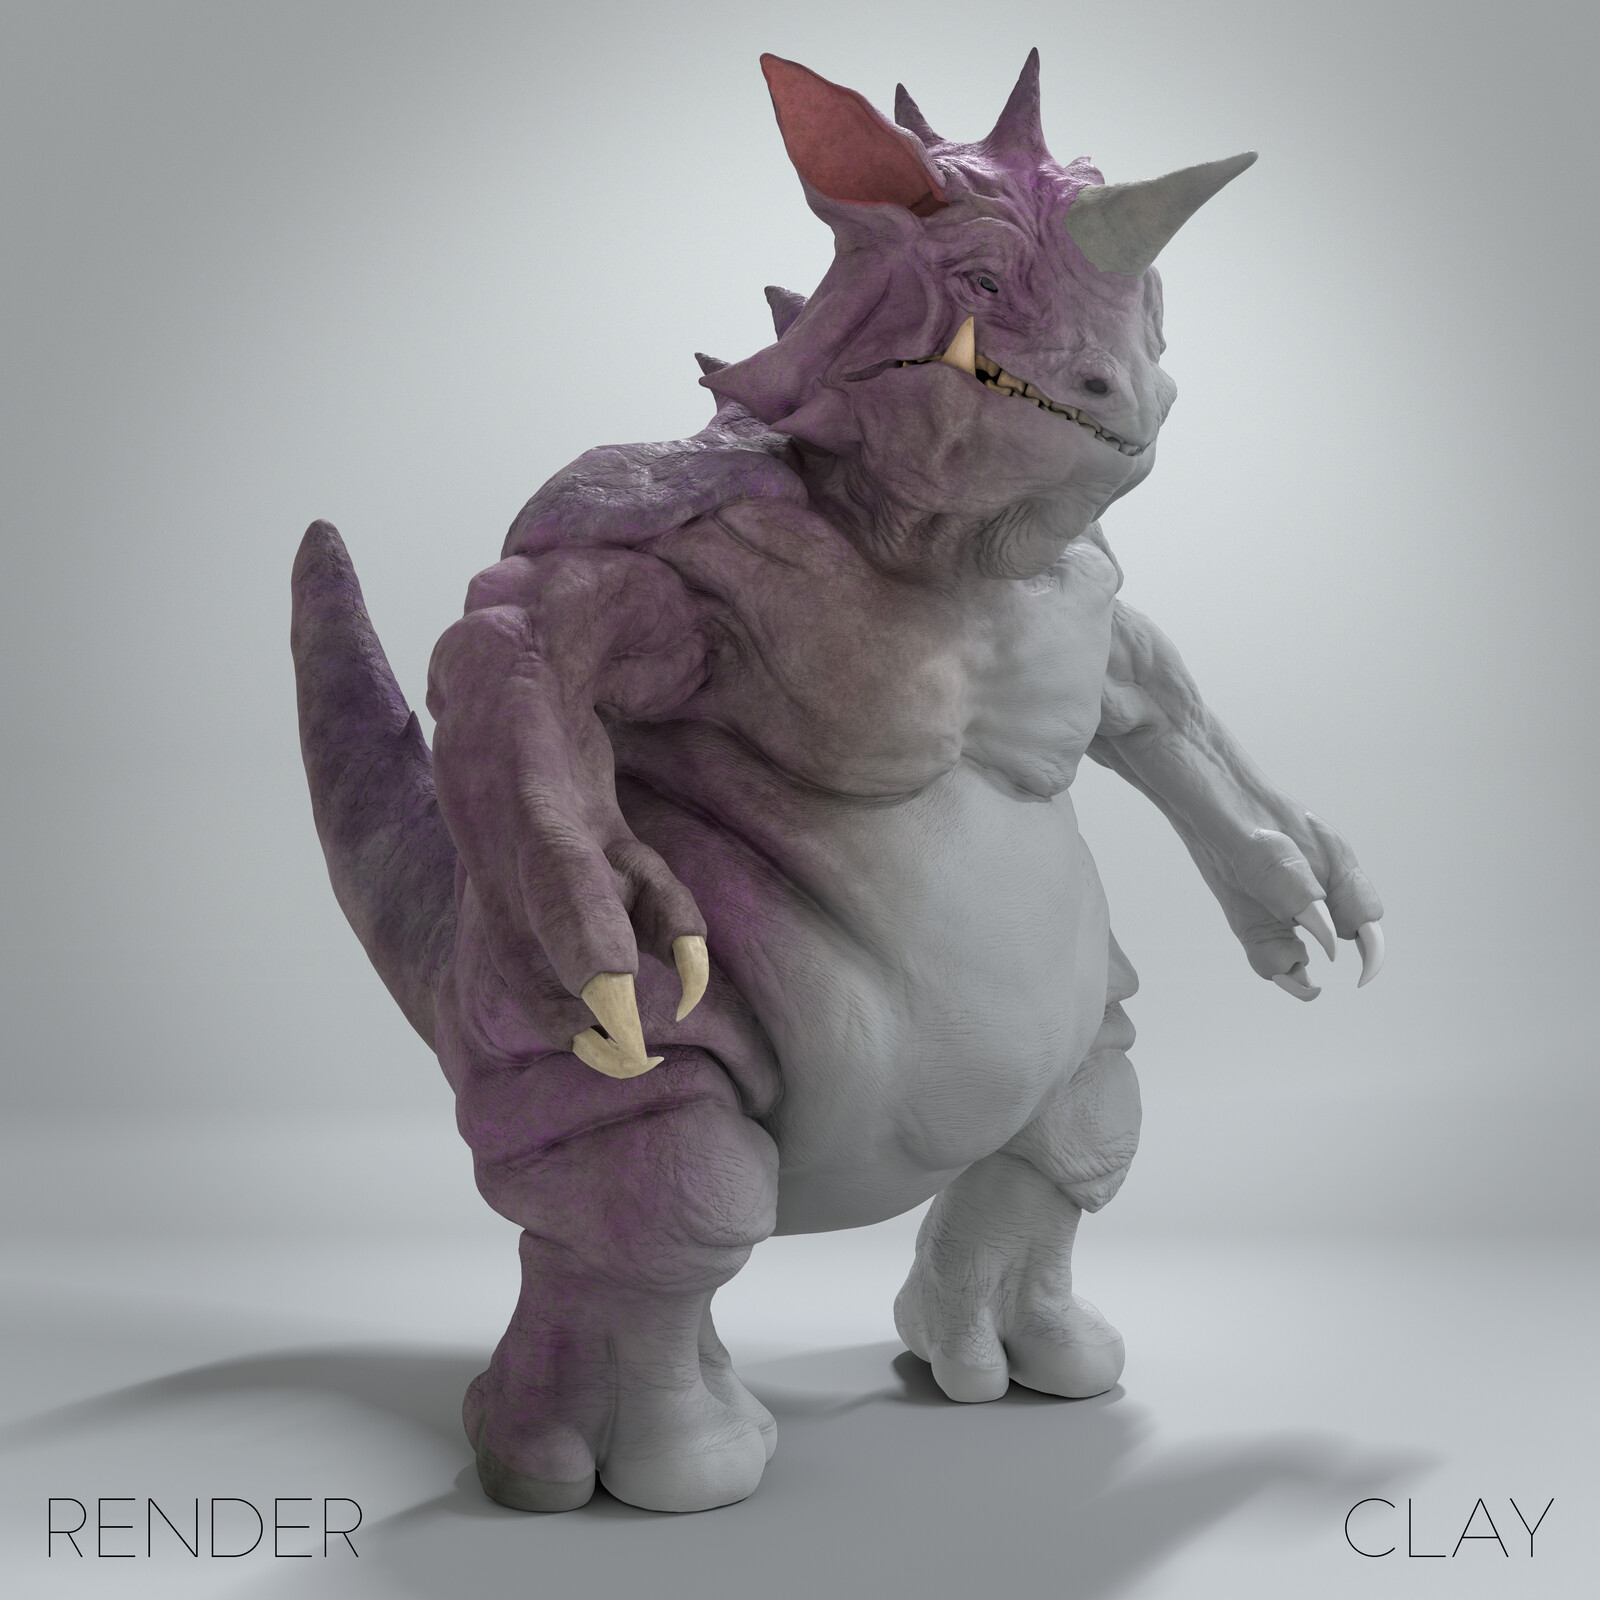 Clay - Front